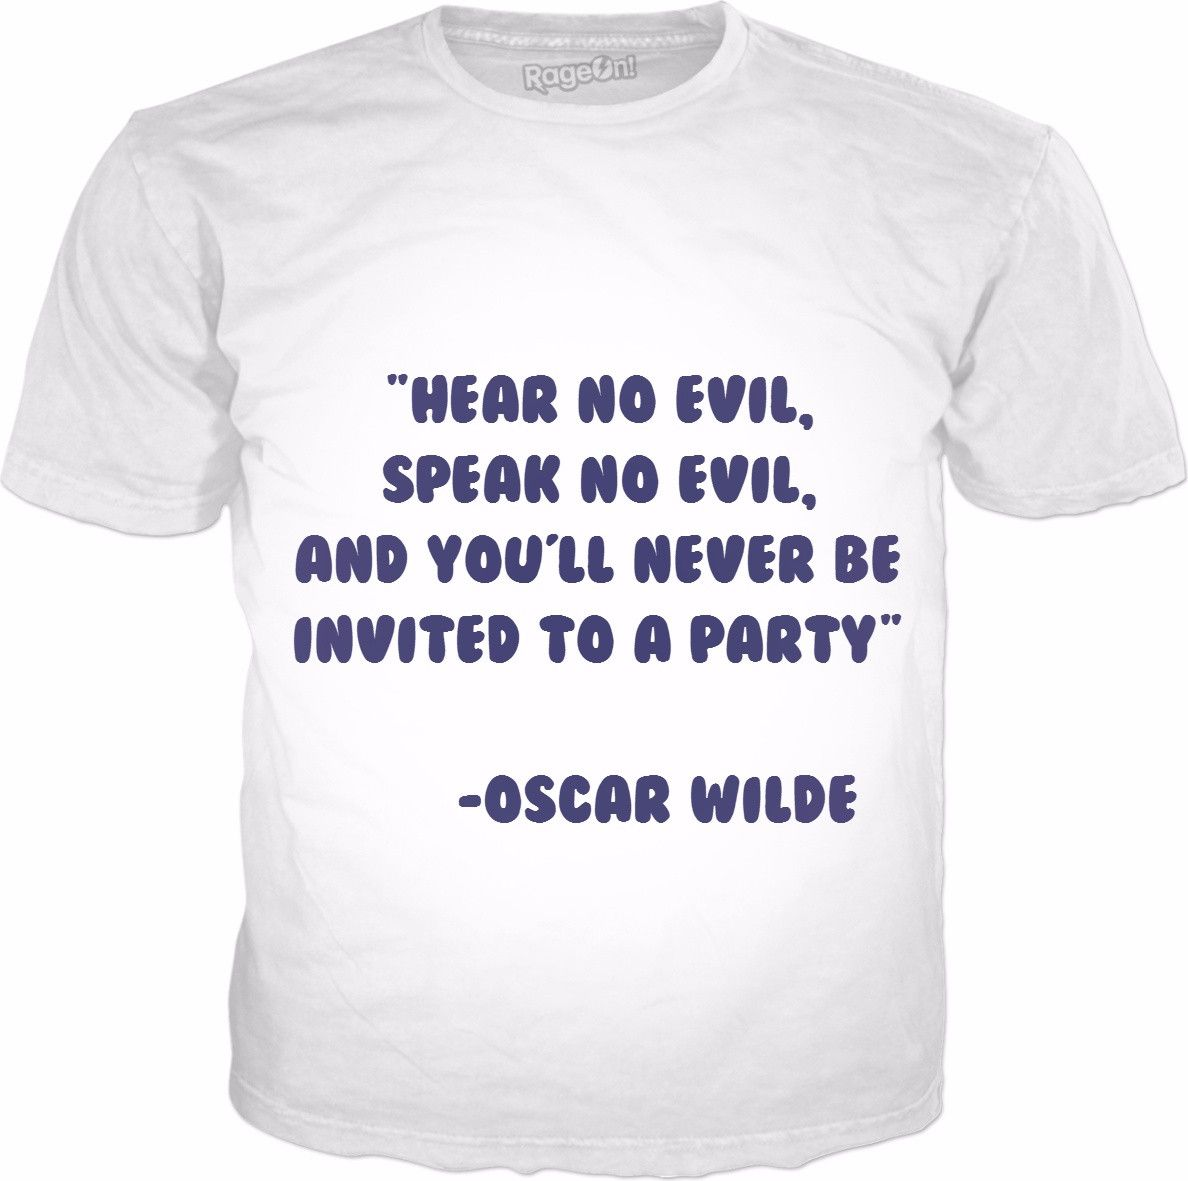 Check out my new product https://www.rageon.com/products/oscar-wilde-quote on RageOn!